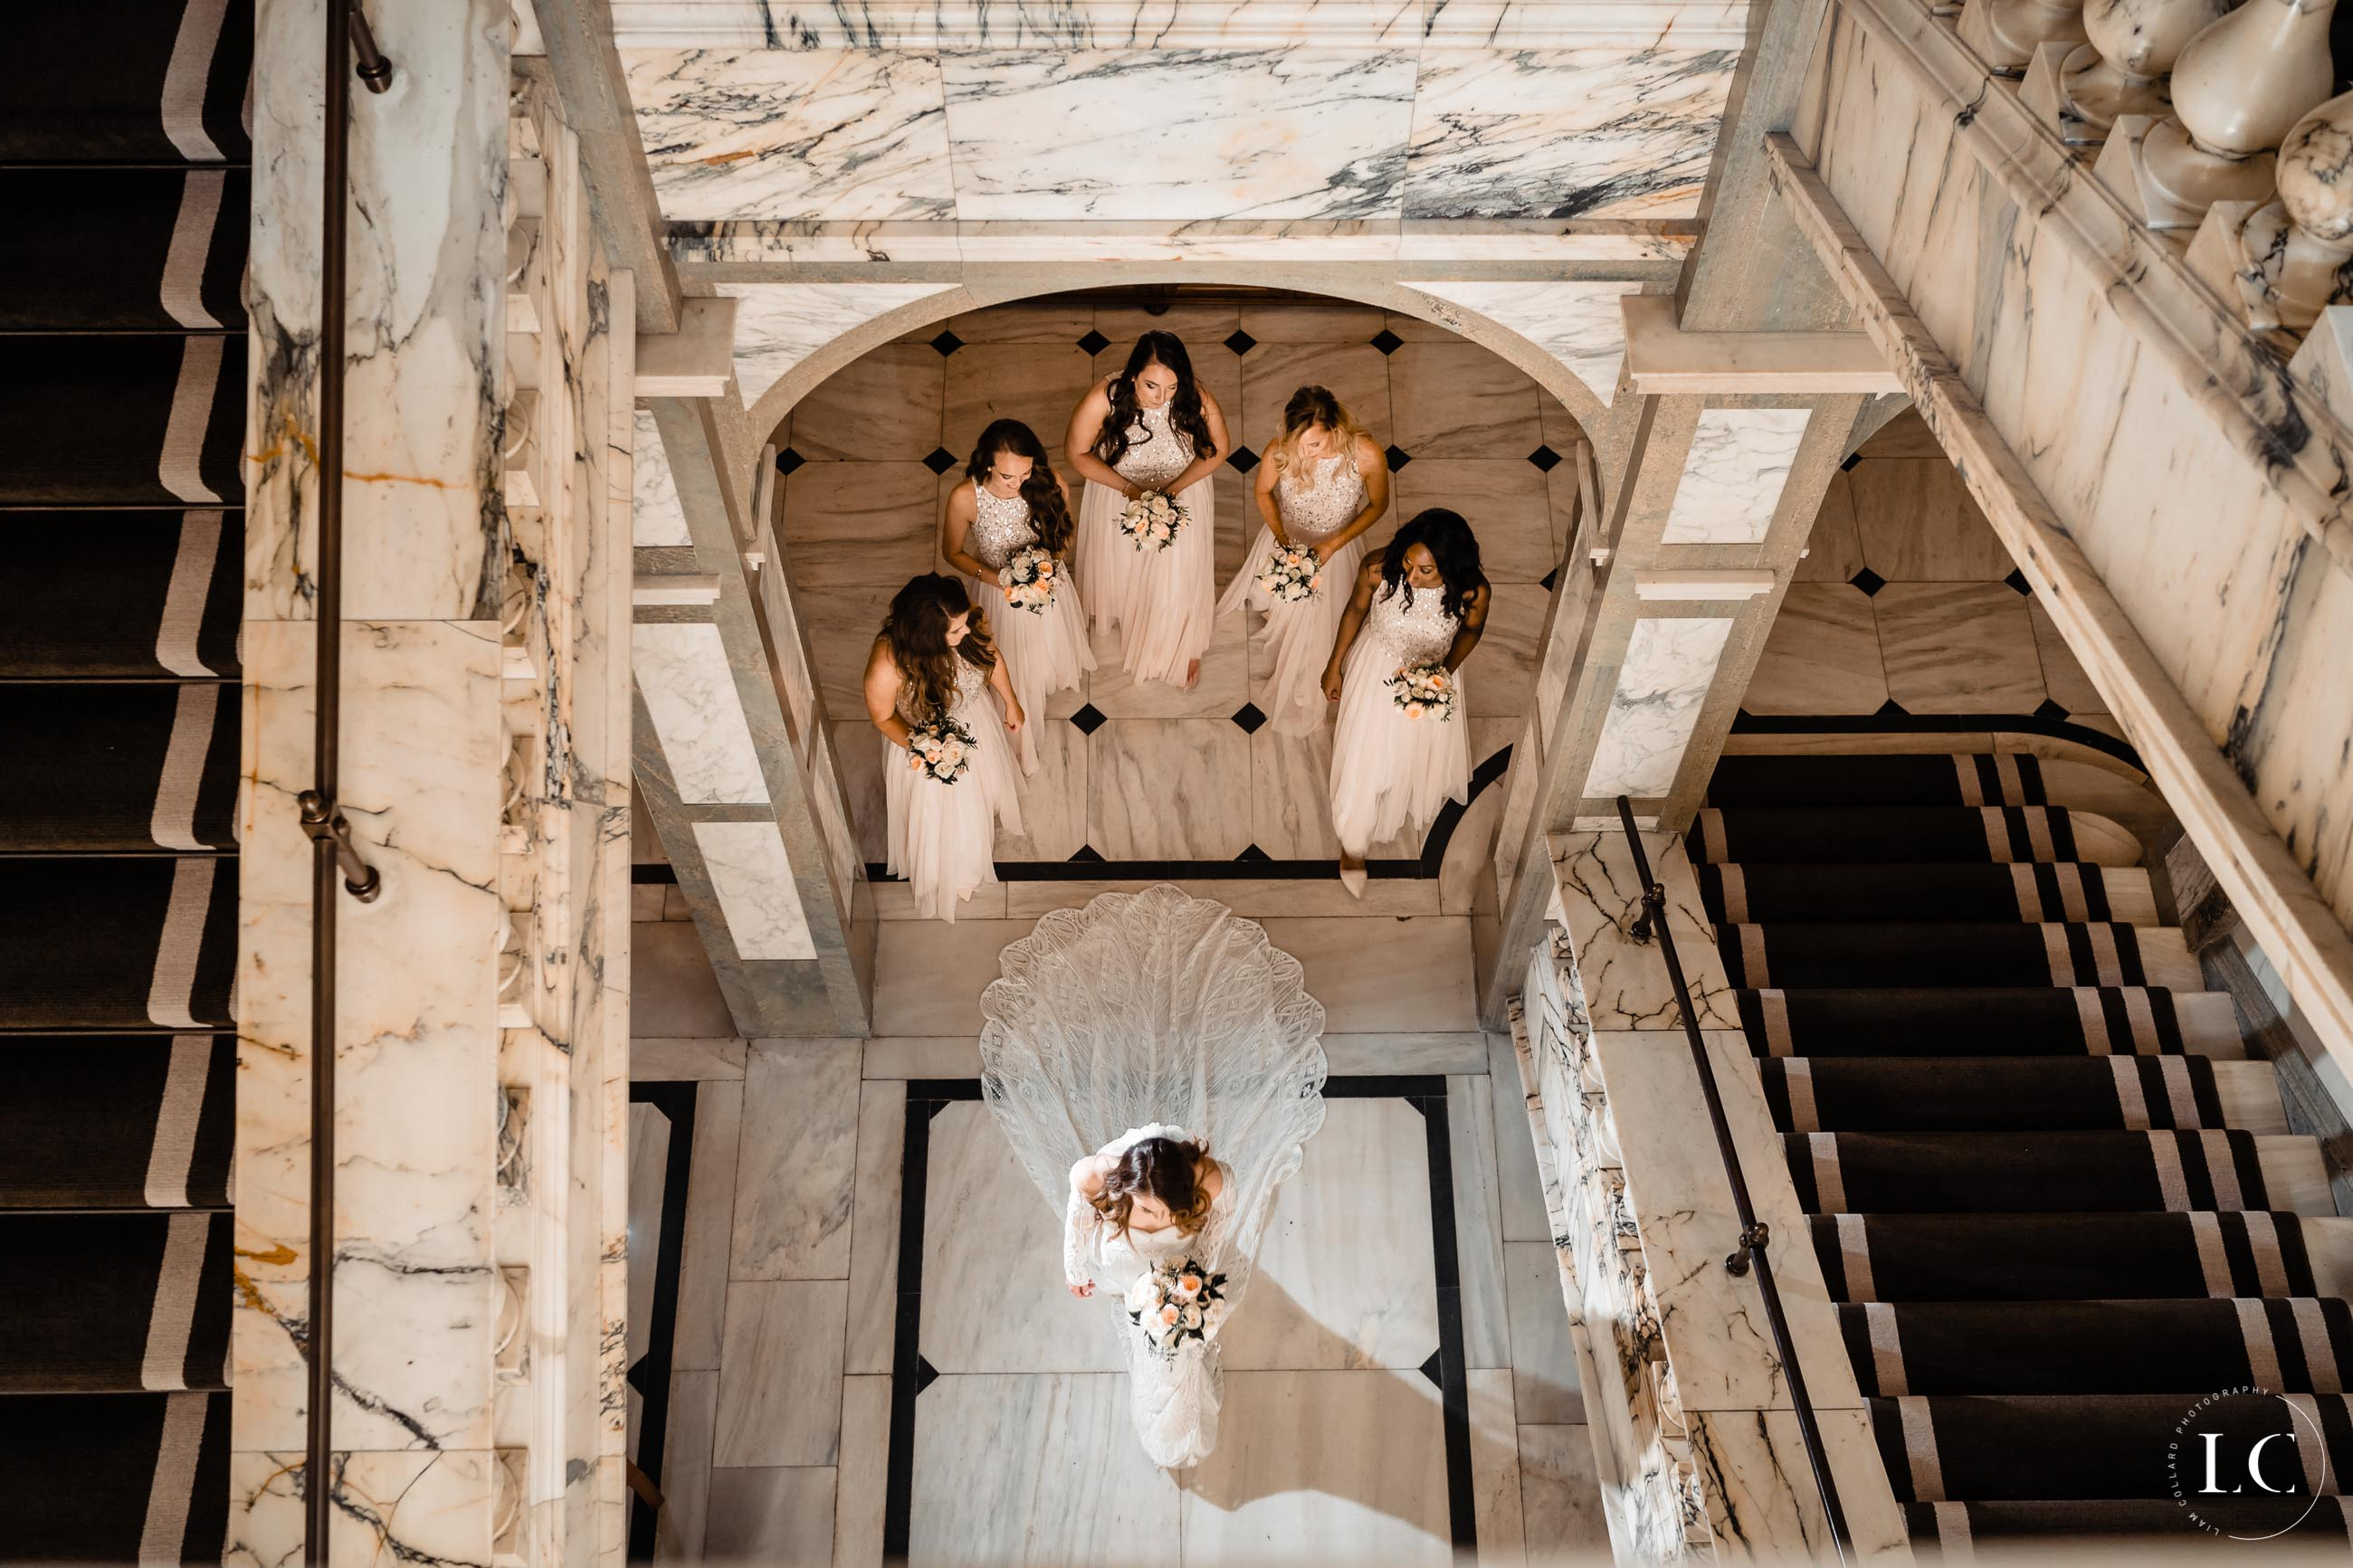 Taken from above of bride and bridesmaids